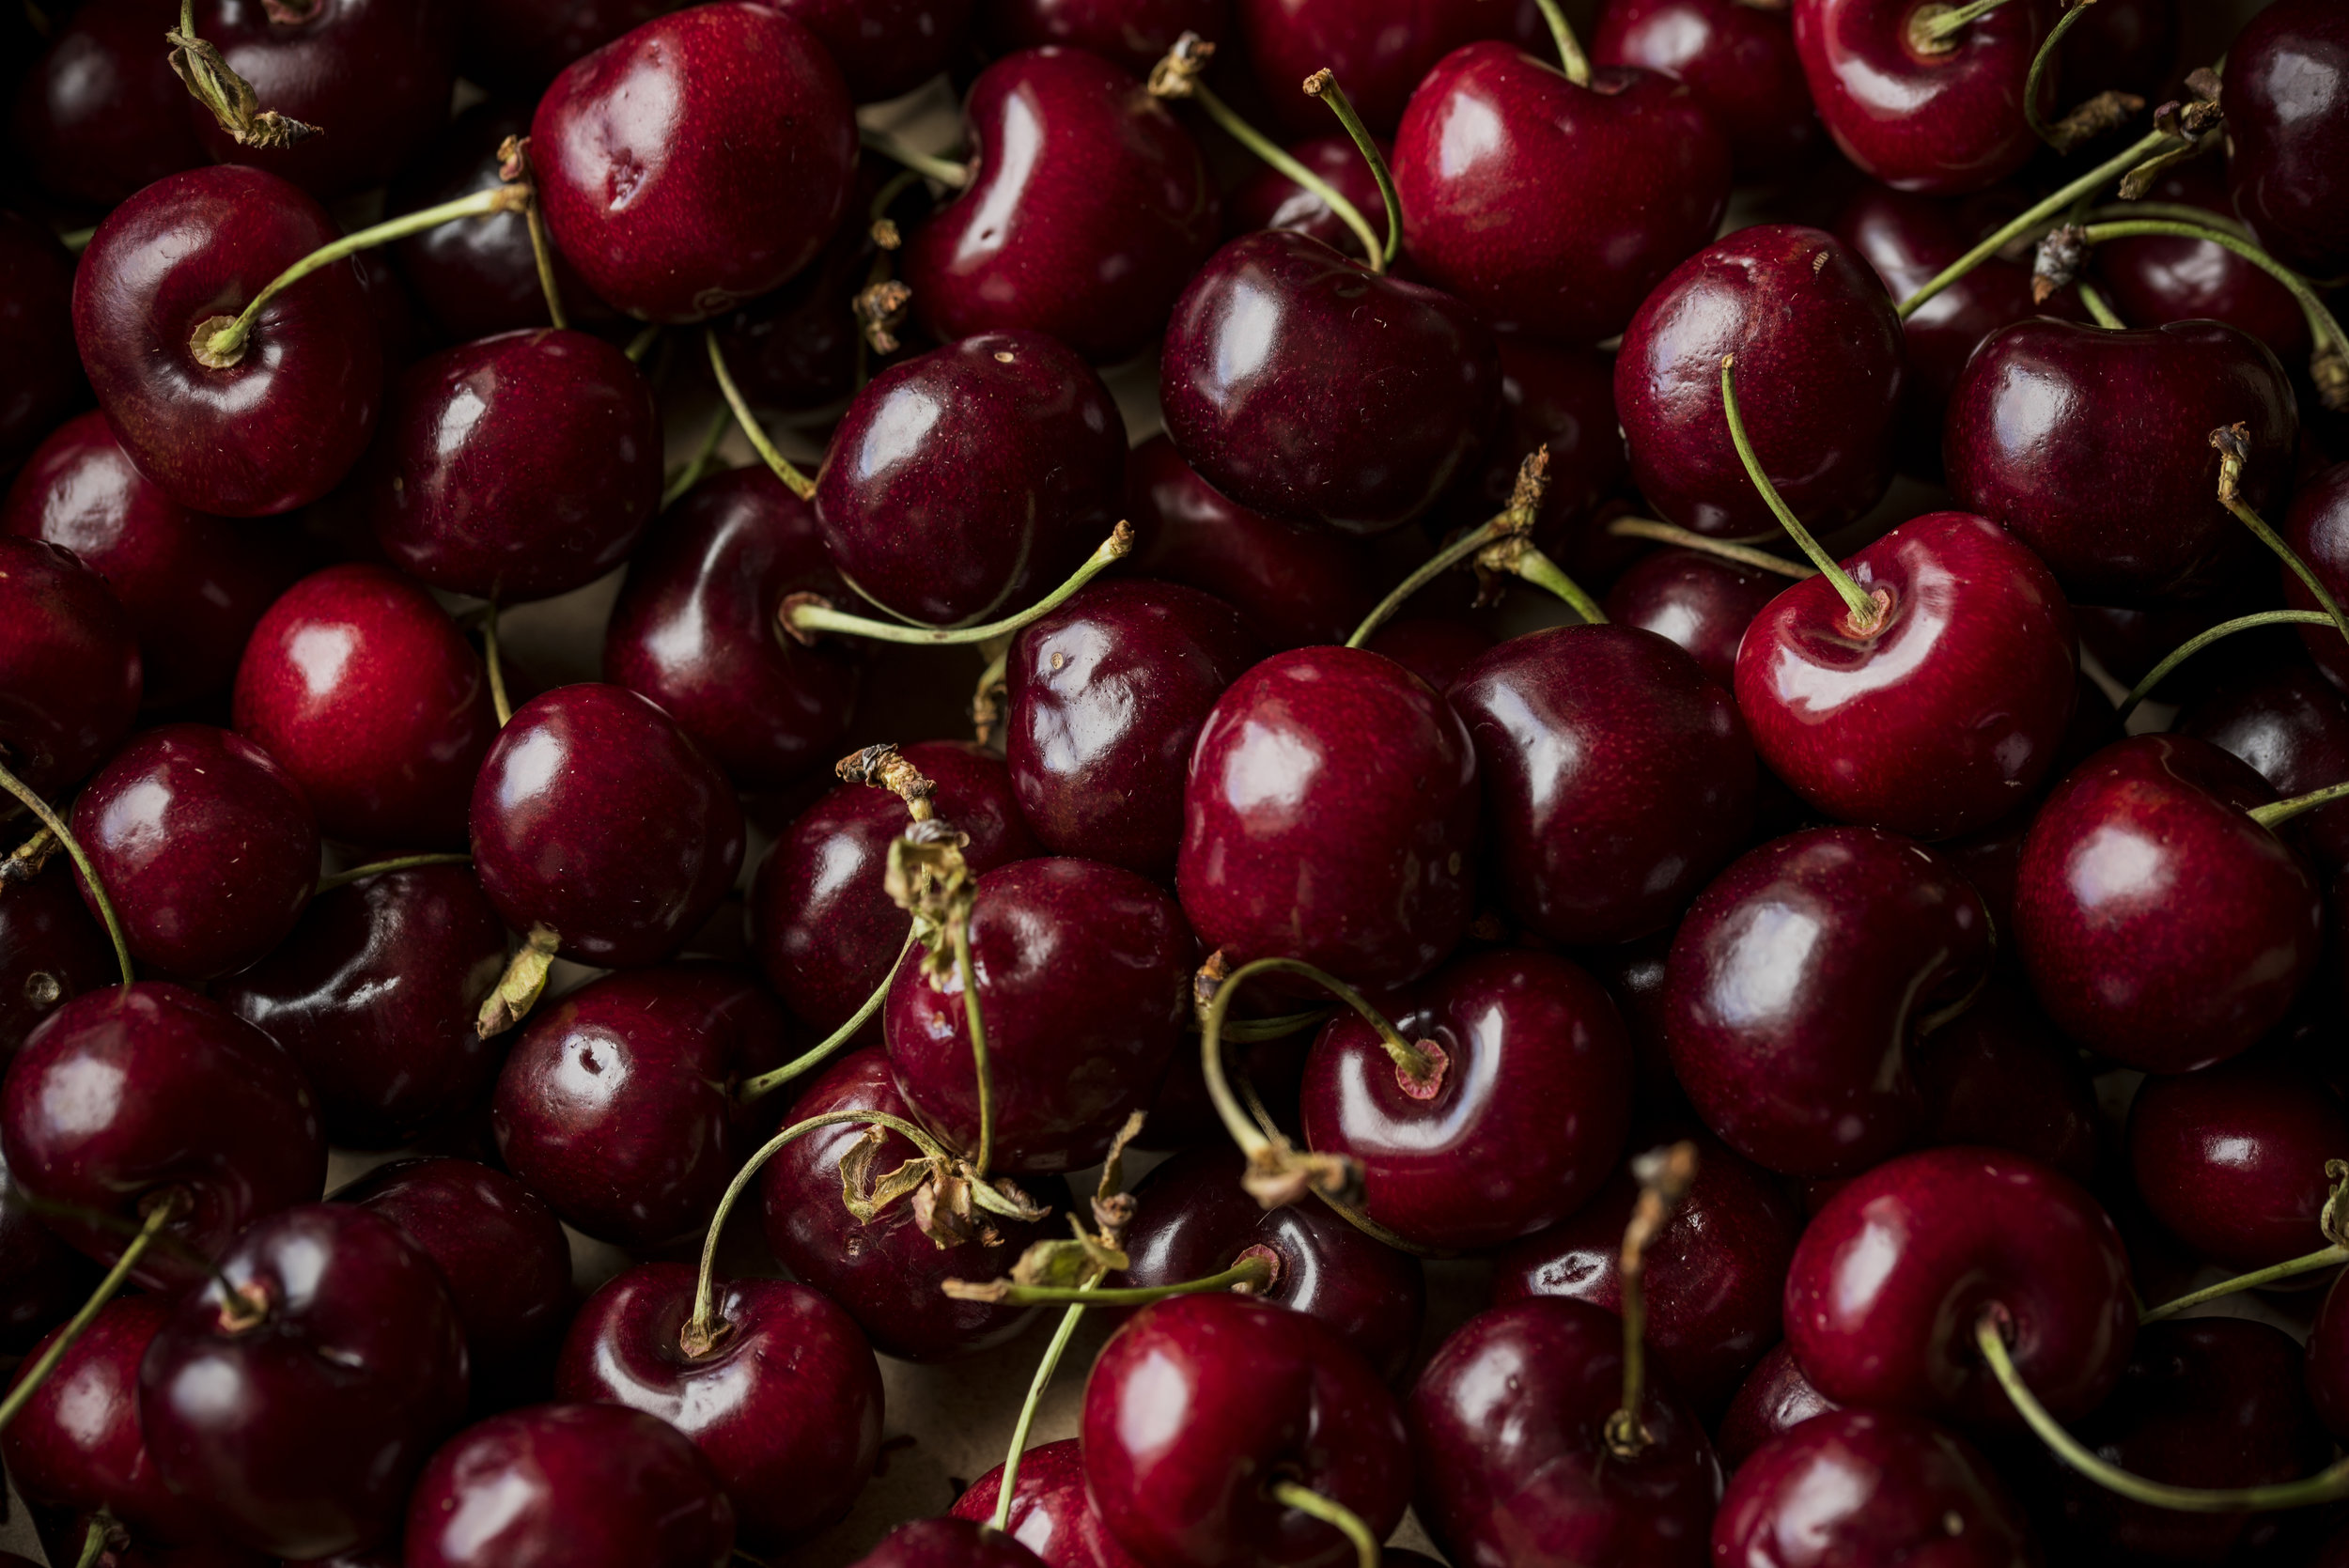 cherries - An average of five pesticides were detected on conventional cherries.30 percent of cherry samples contained iprodione, a pesticide not allowed in Europe, which may cause cancer.